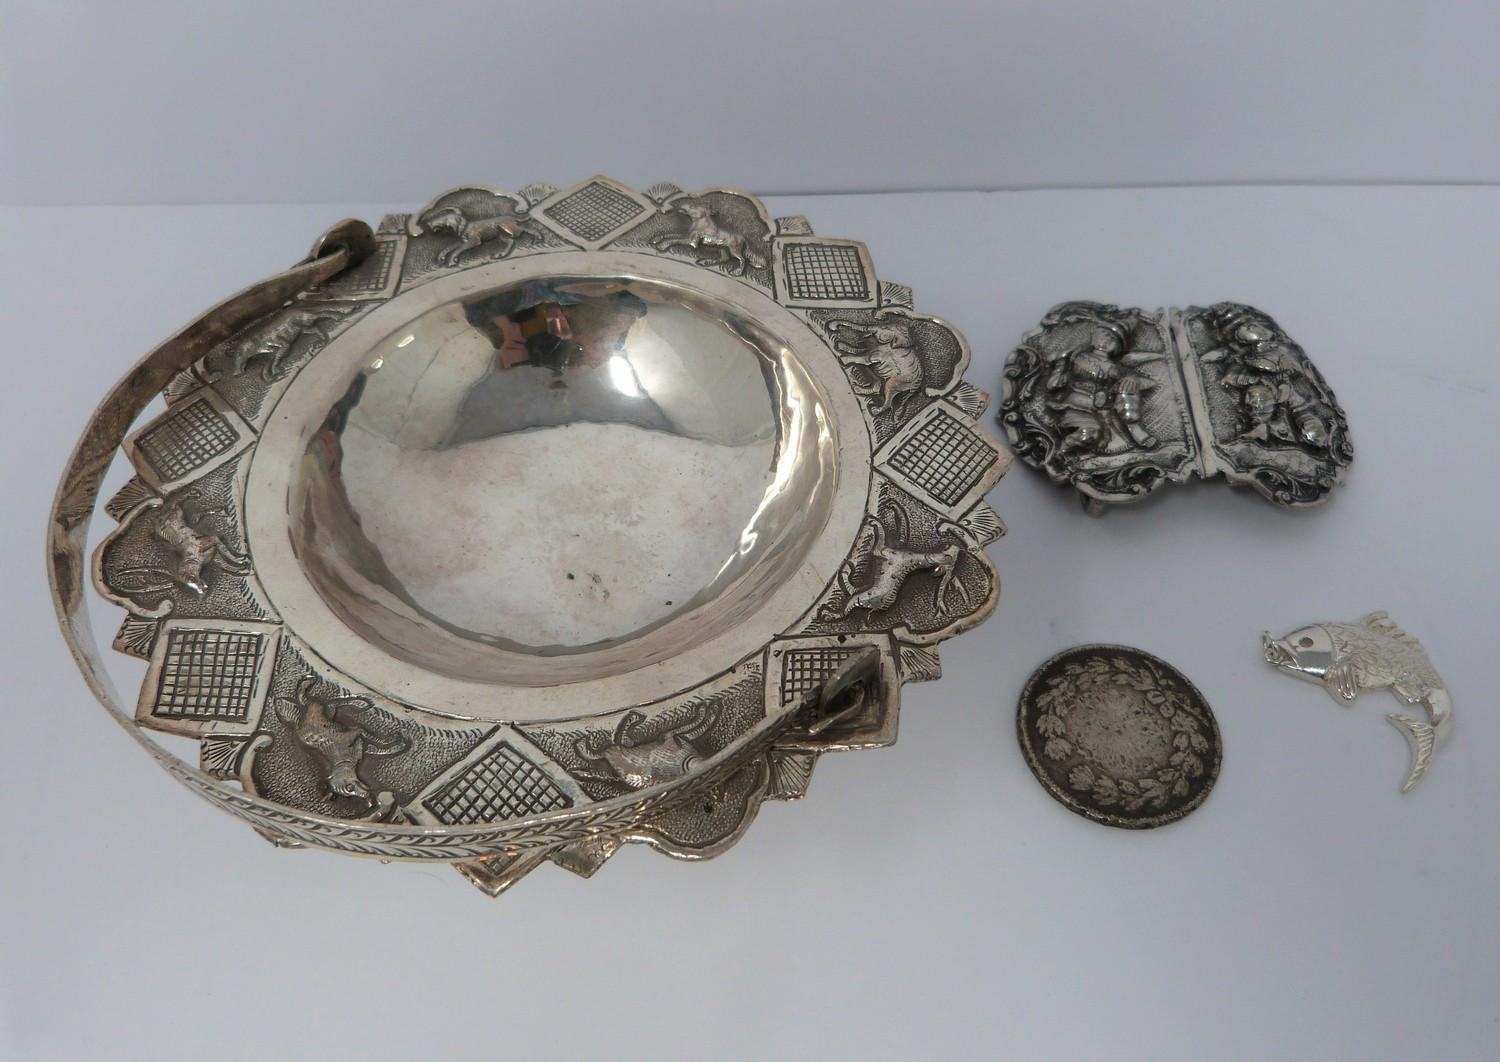 A white metal oriental handled dish, coin, silver fish pendant and white metal thai buckle, basket